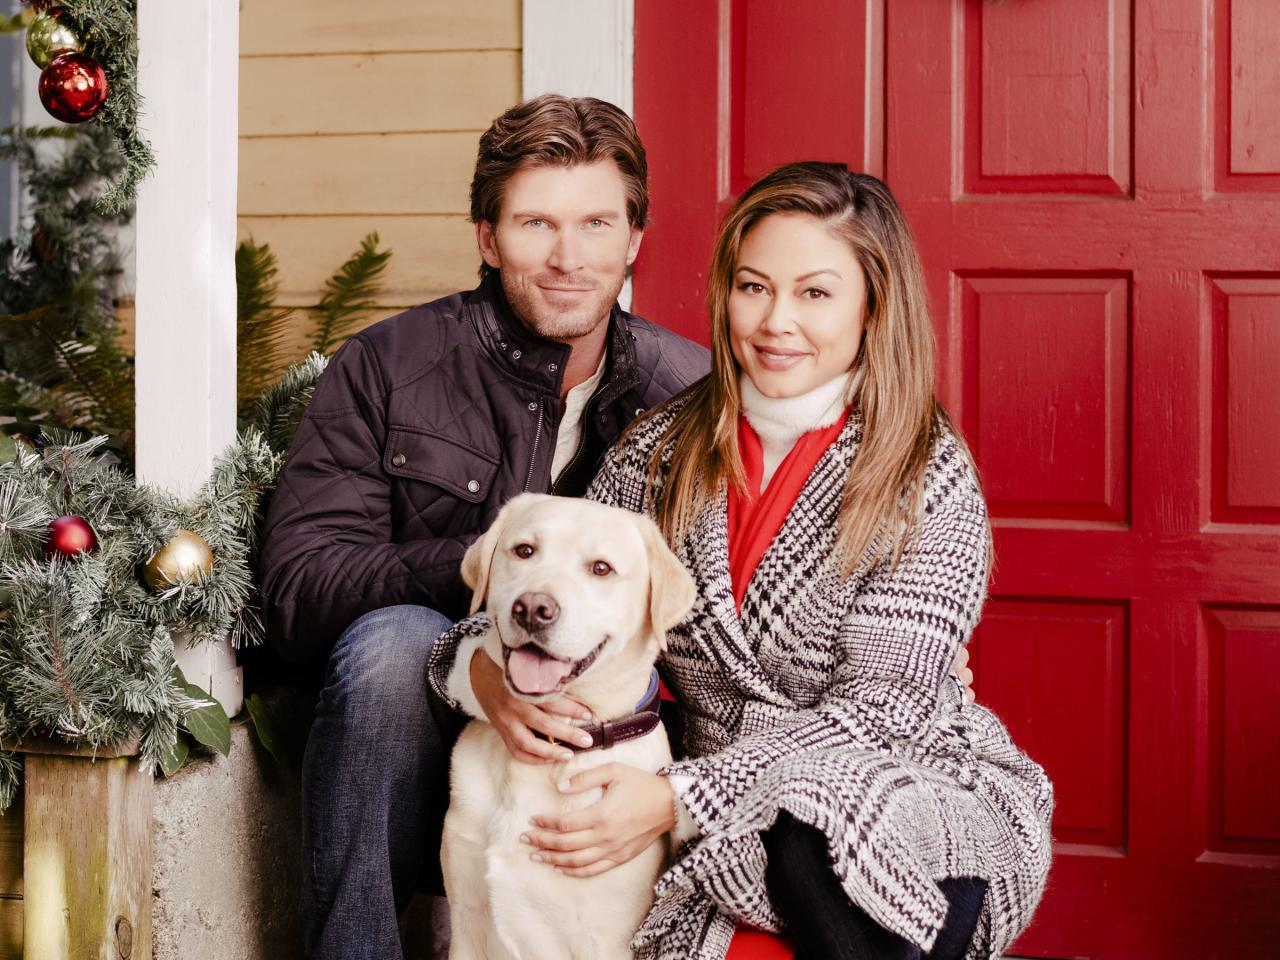 """<strong>Stars:</strong> Vanessa Lachey, Christopher Russell  <strong>Contains:</strong> Missing dog, barking up old romantic trees  <strong>Official description:</strong> """"When Becca's (Lachey) dog runs away on Christmas Eve, she must team up with her ex-boyfriend Max (Russell) to find him. As the pup leads the exes on an all-day-and-night search through their North Carolina hometown, they revisit people, places and things that remind them of the Christmas pasts they spent together."""""""